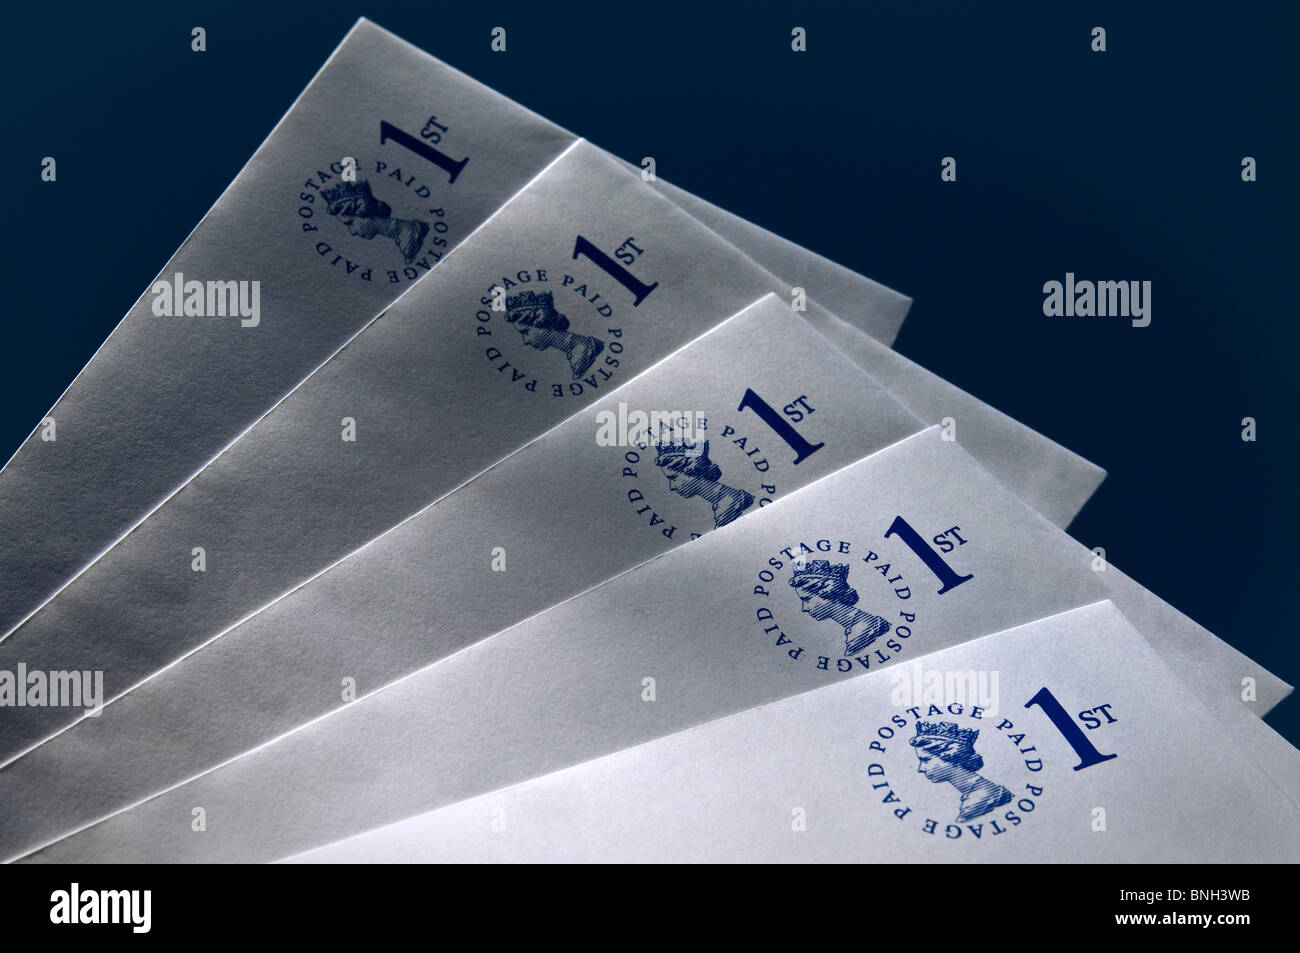 Pre-paid UK first class envelopes on dark blue background - Stock Image